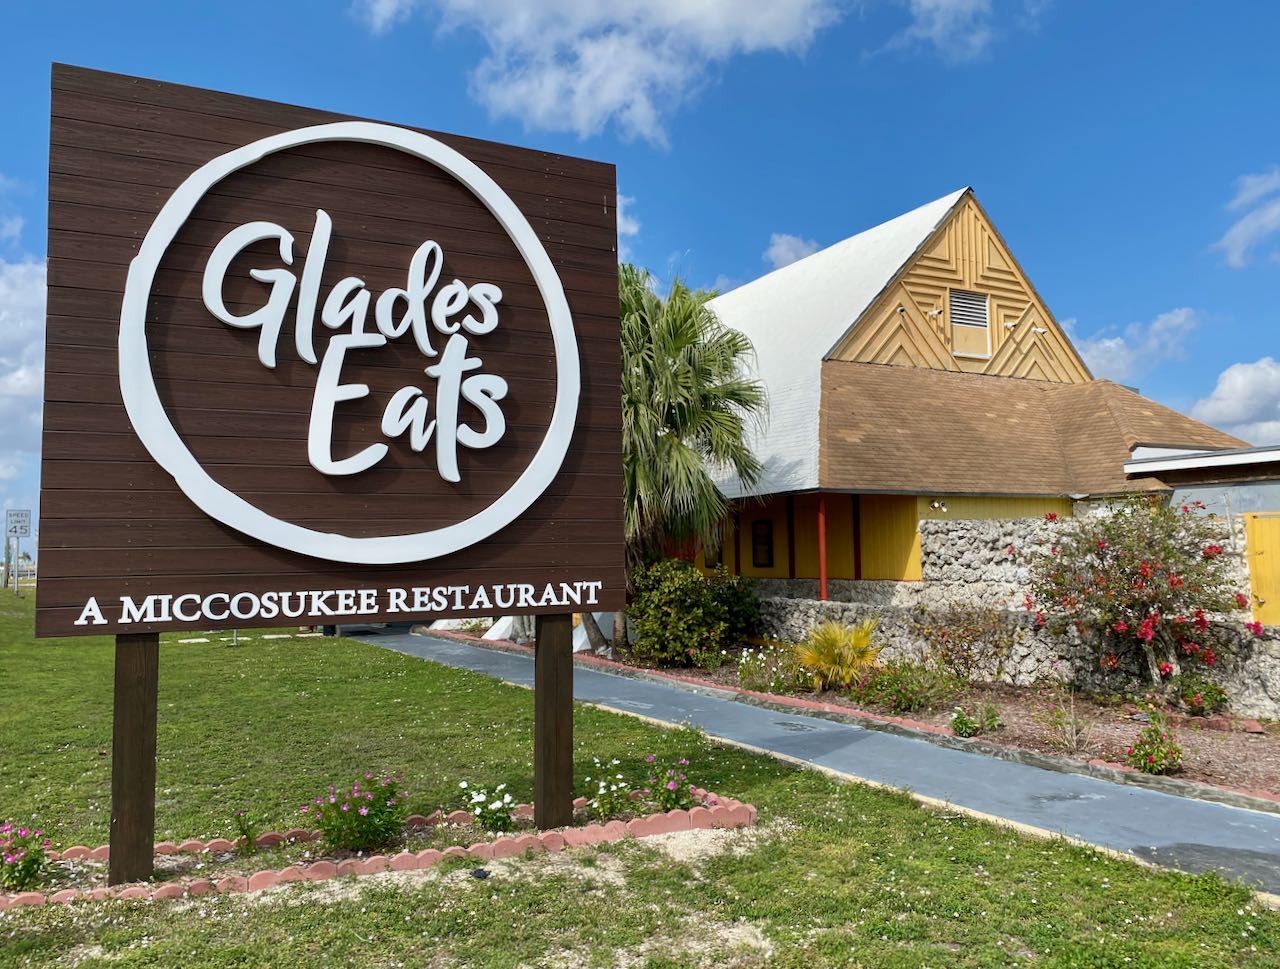 Glades Eats Miccosukee Restaurant Attractions and Places to Stop Along the Tamiami Trail/U.S. Highway 41